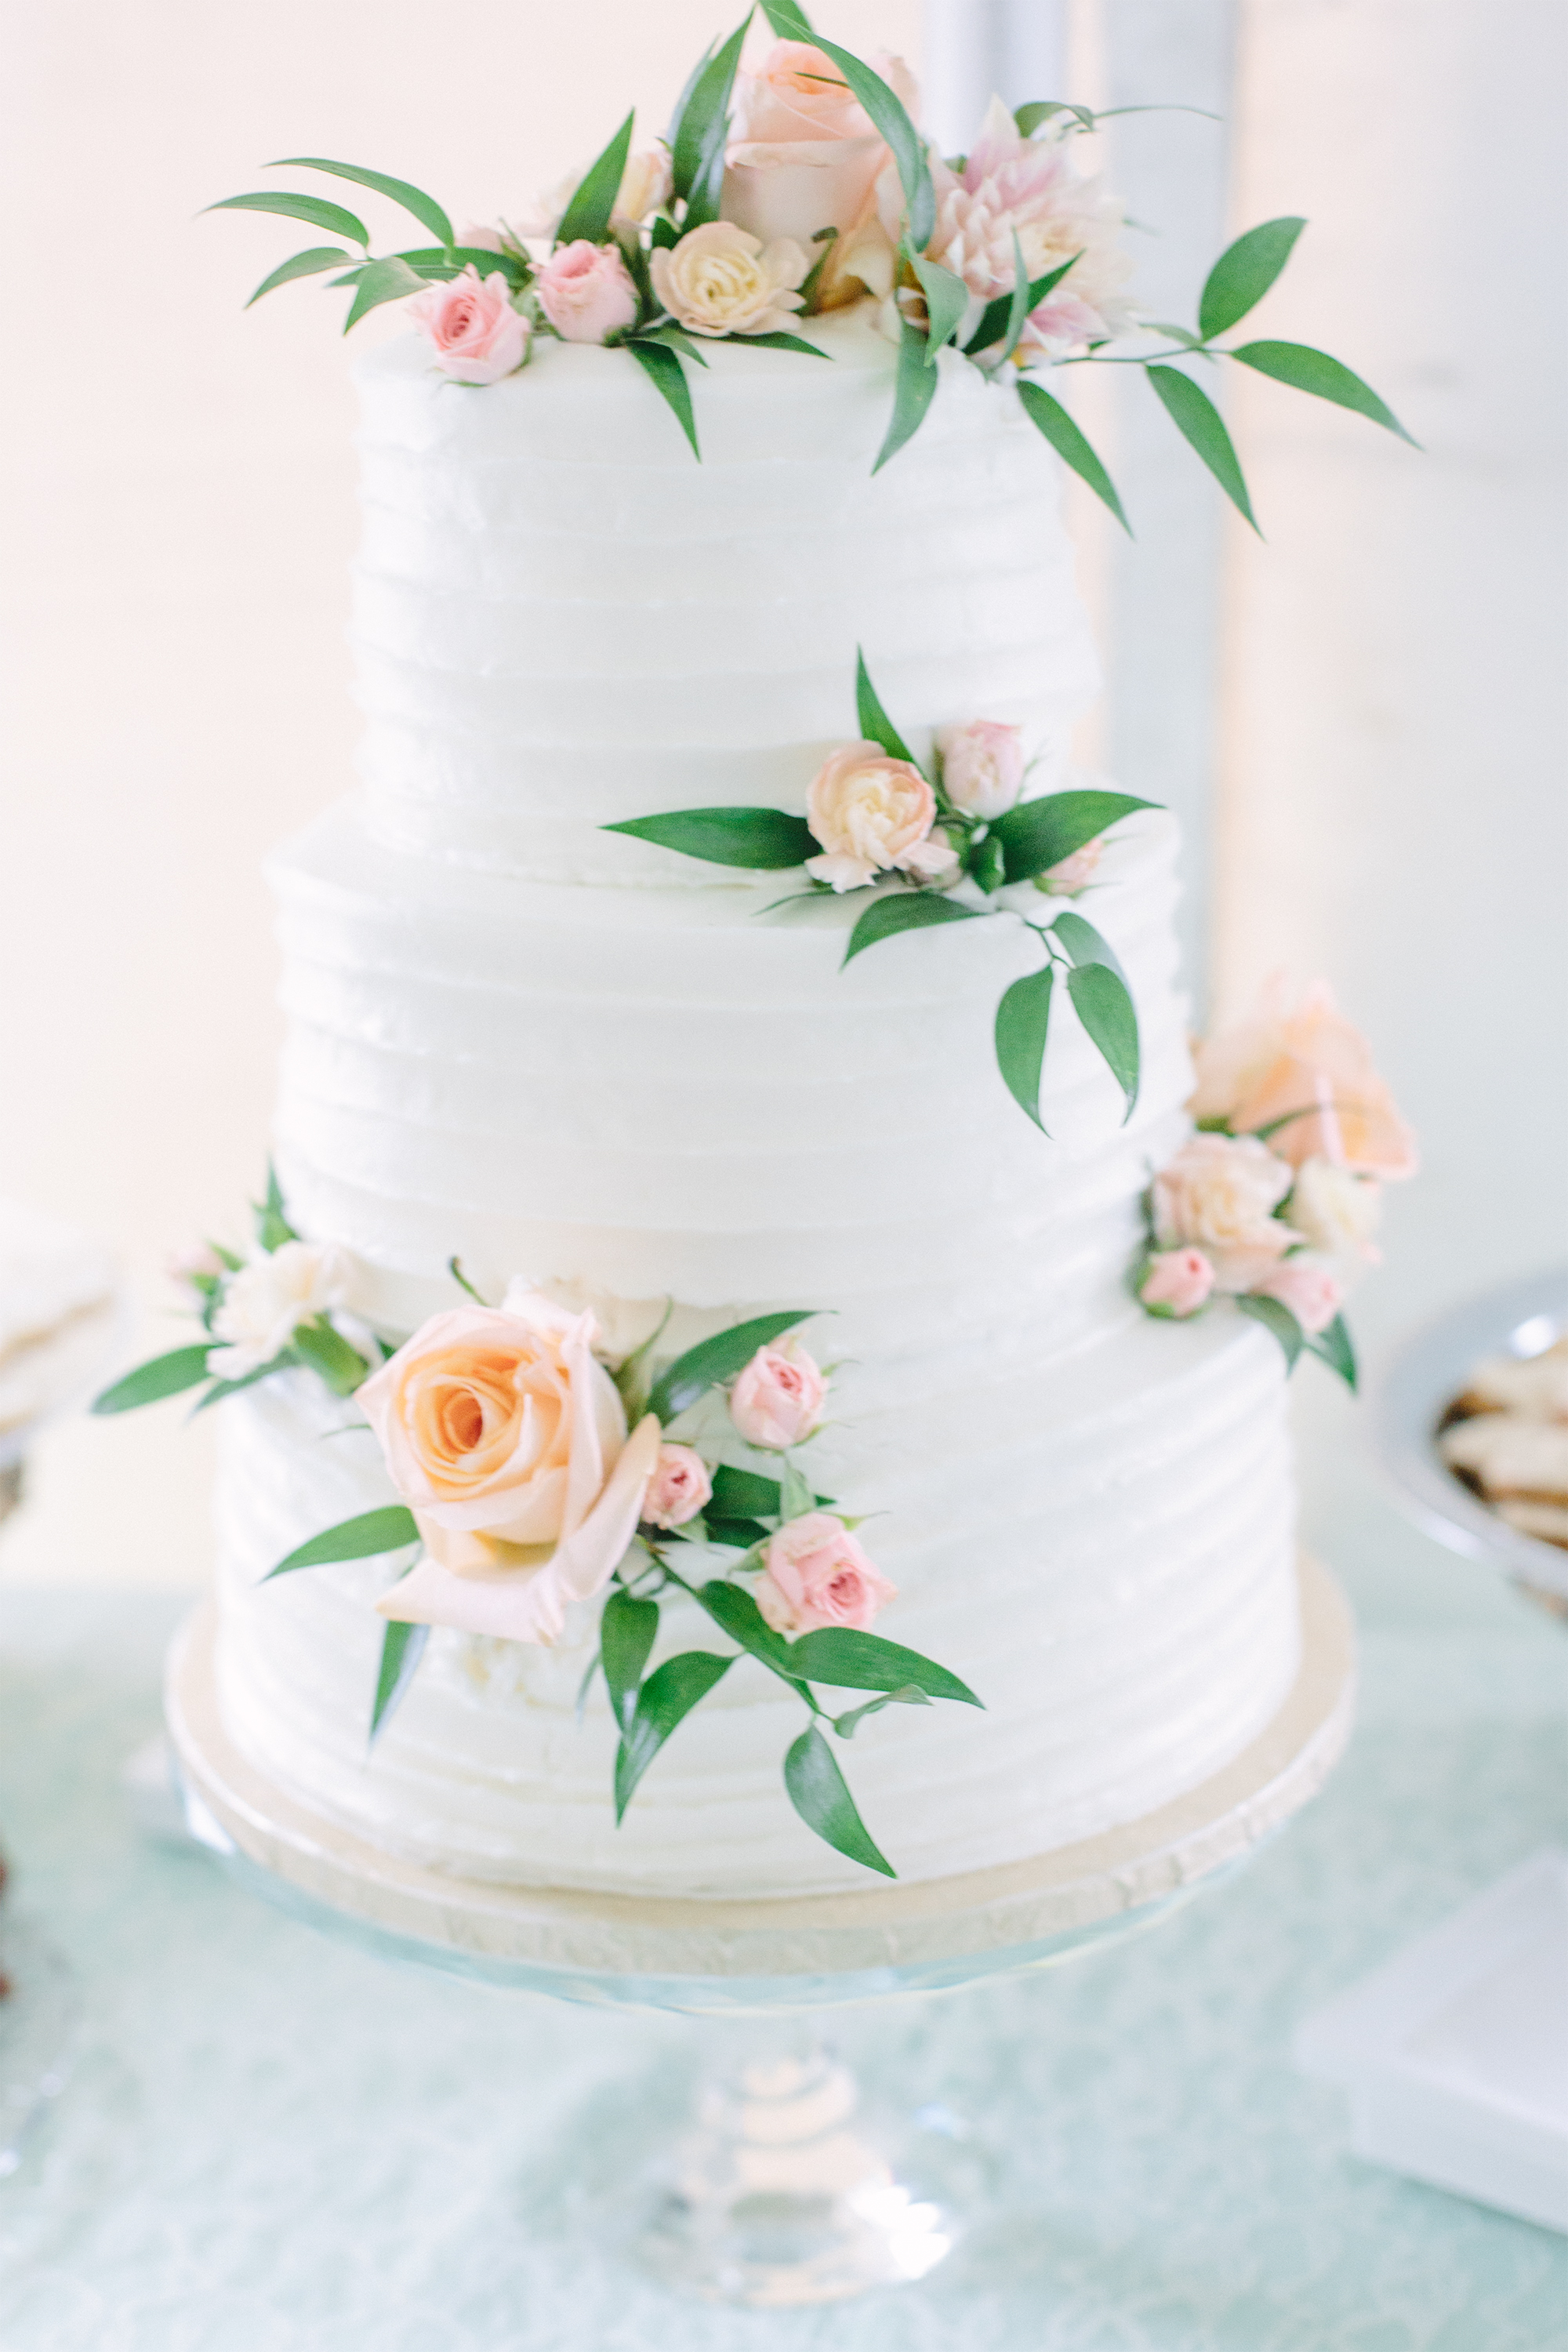 Bright and airy white floral wedding cake photo